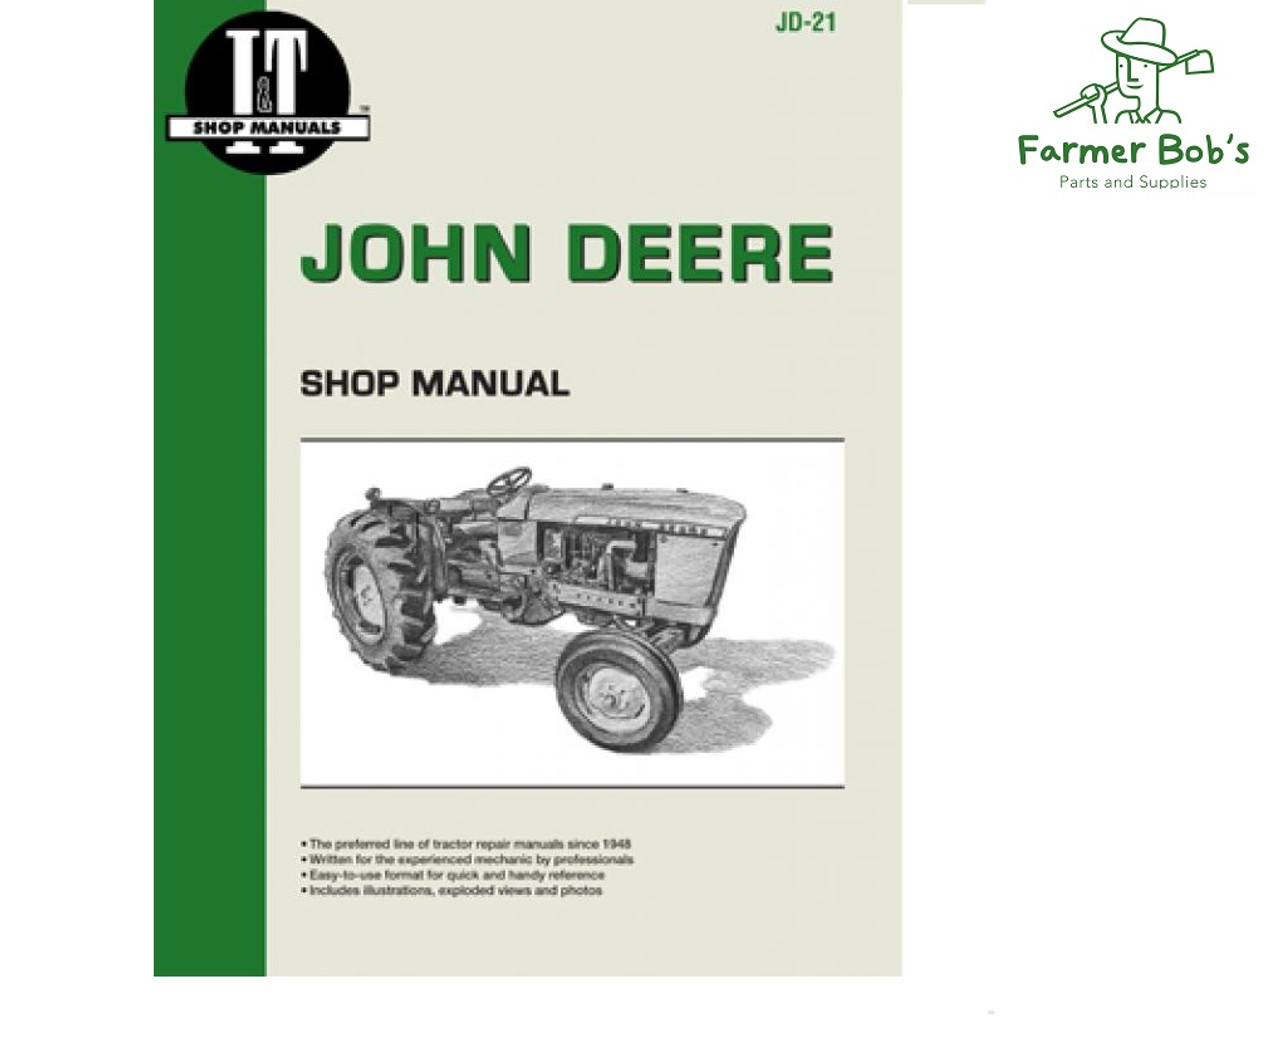 jd56 i&t shop manuals john deere 2840, 2940 and 2950 manual john deere 2940 electrical john deere 2940 wiring diagram #14